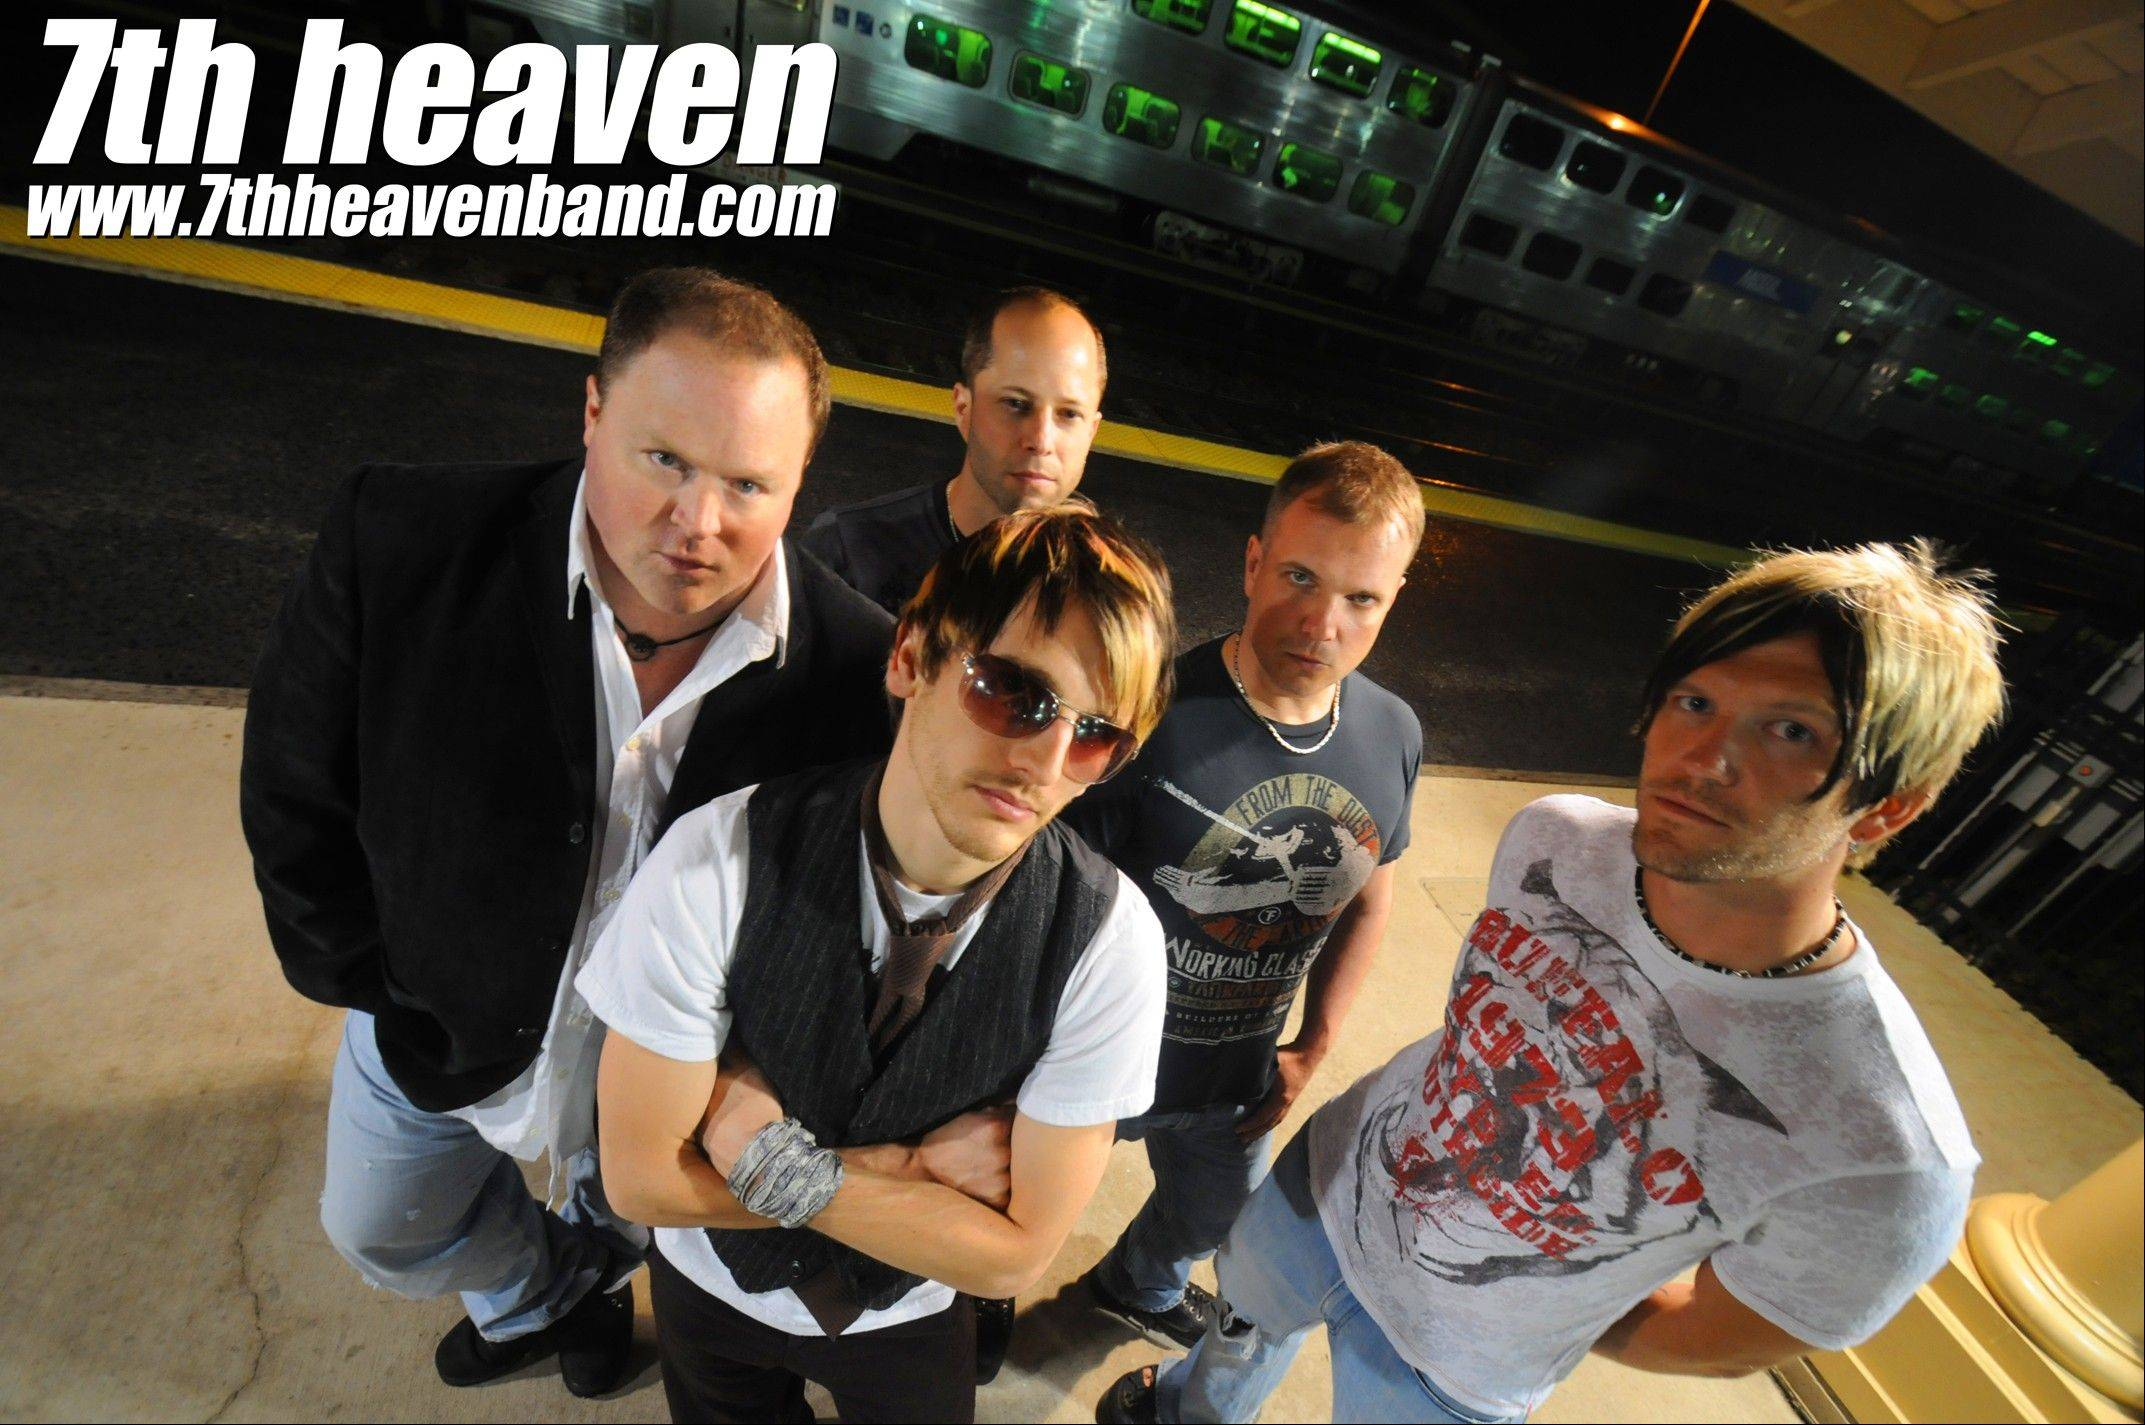 Seventh Heaven plays this weekend at two venues: Viper Alley in Lincolnshire and the Prairie Center for the Arts in Schaumburg.